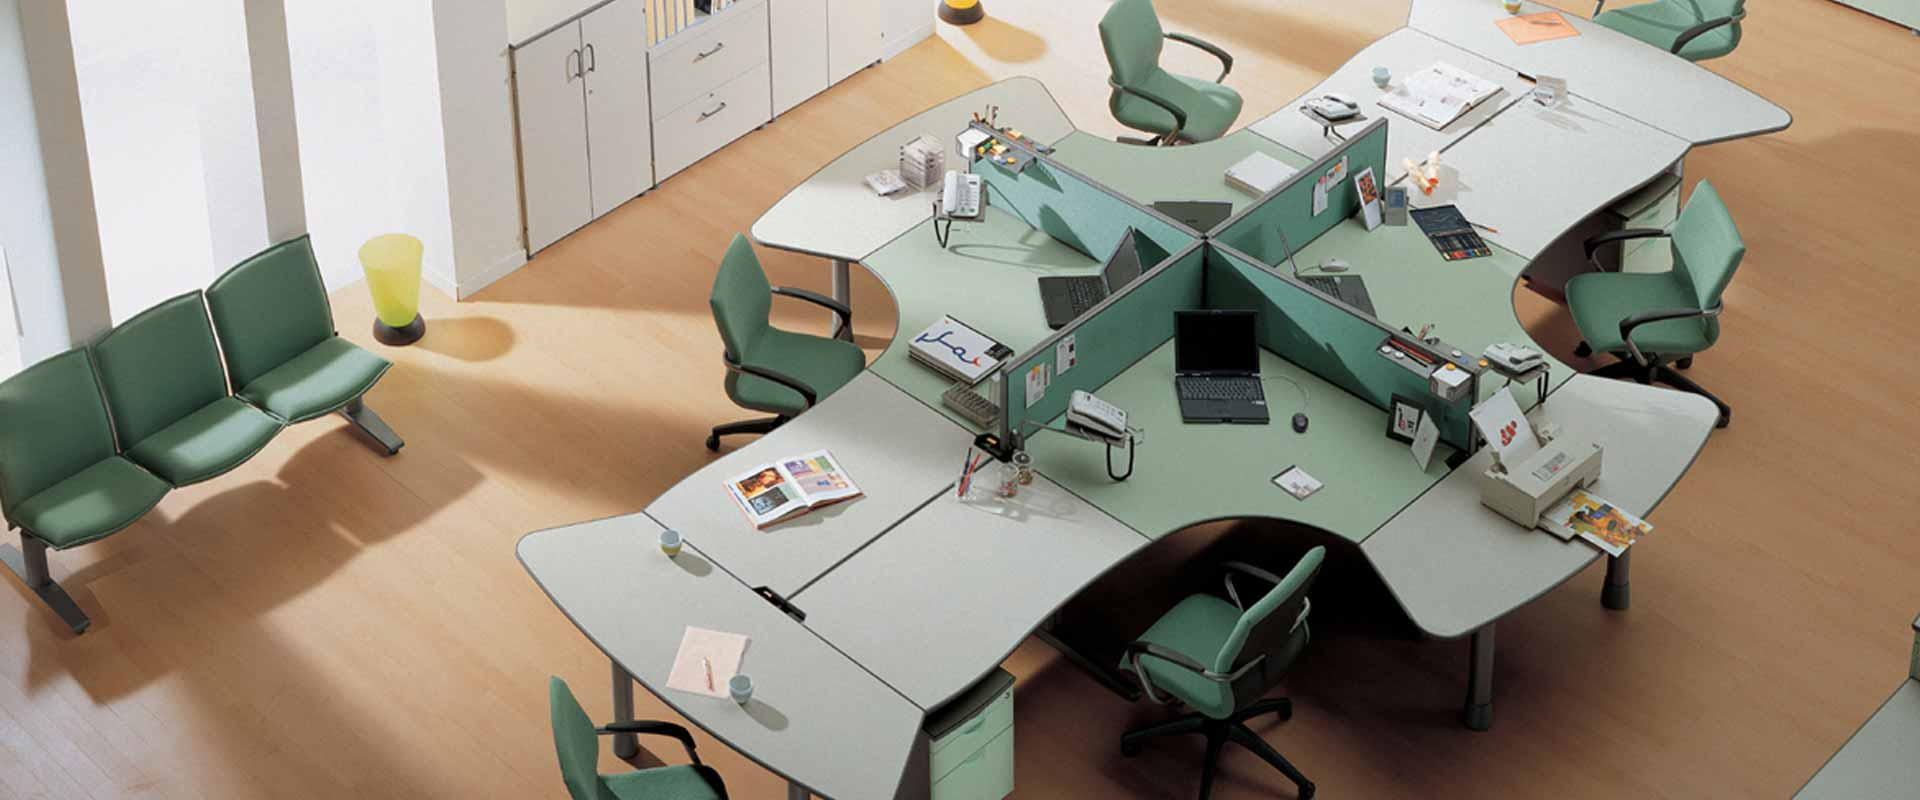 Office Furniture and Equipment Leasing